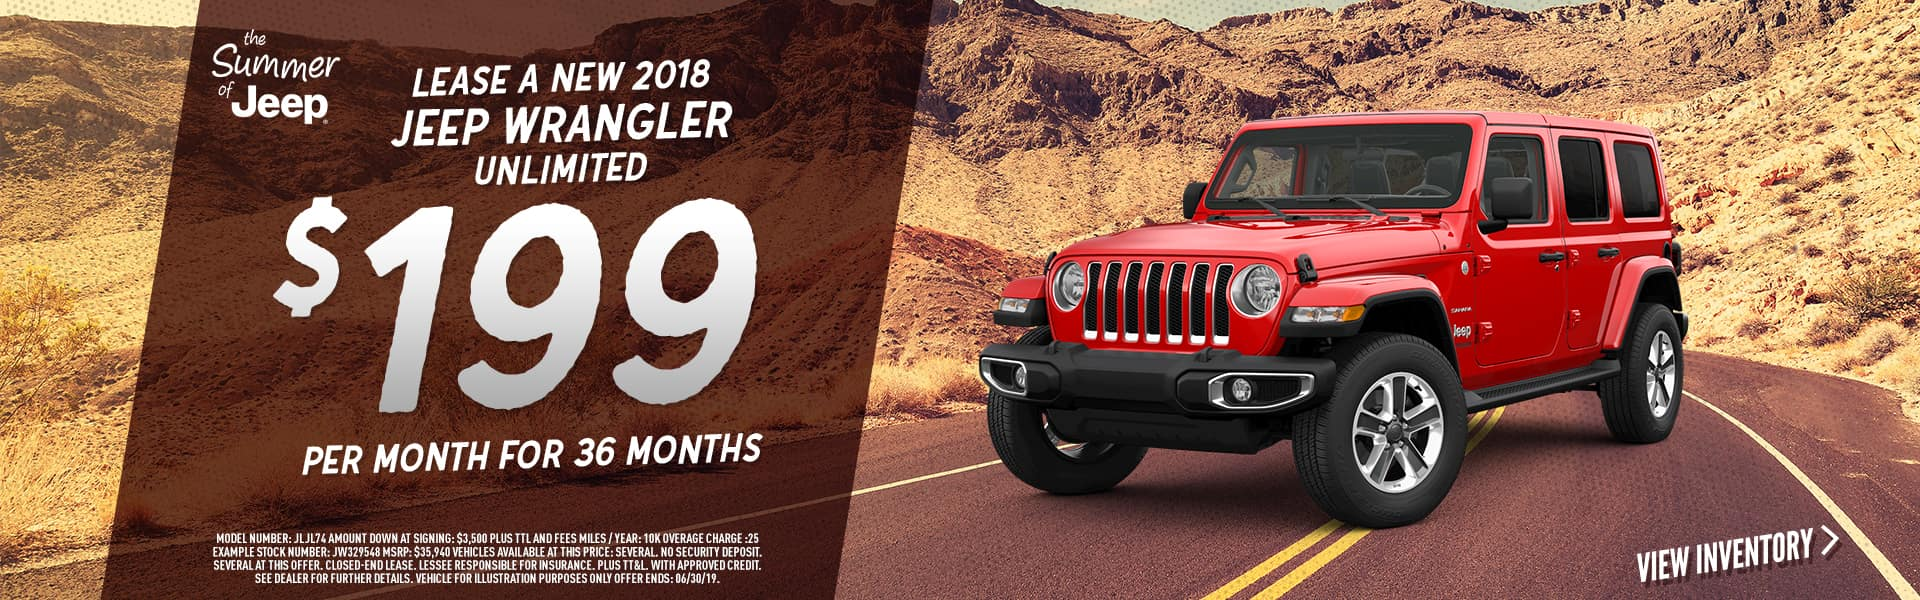 2018-Jeep-Wrangler-Unlimited